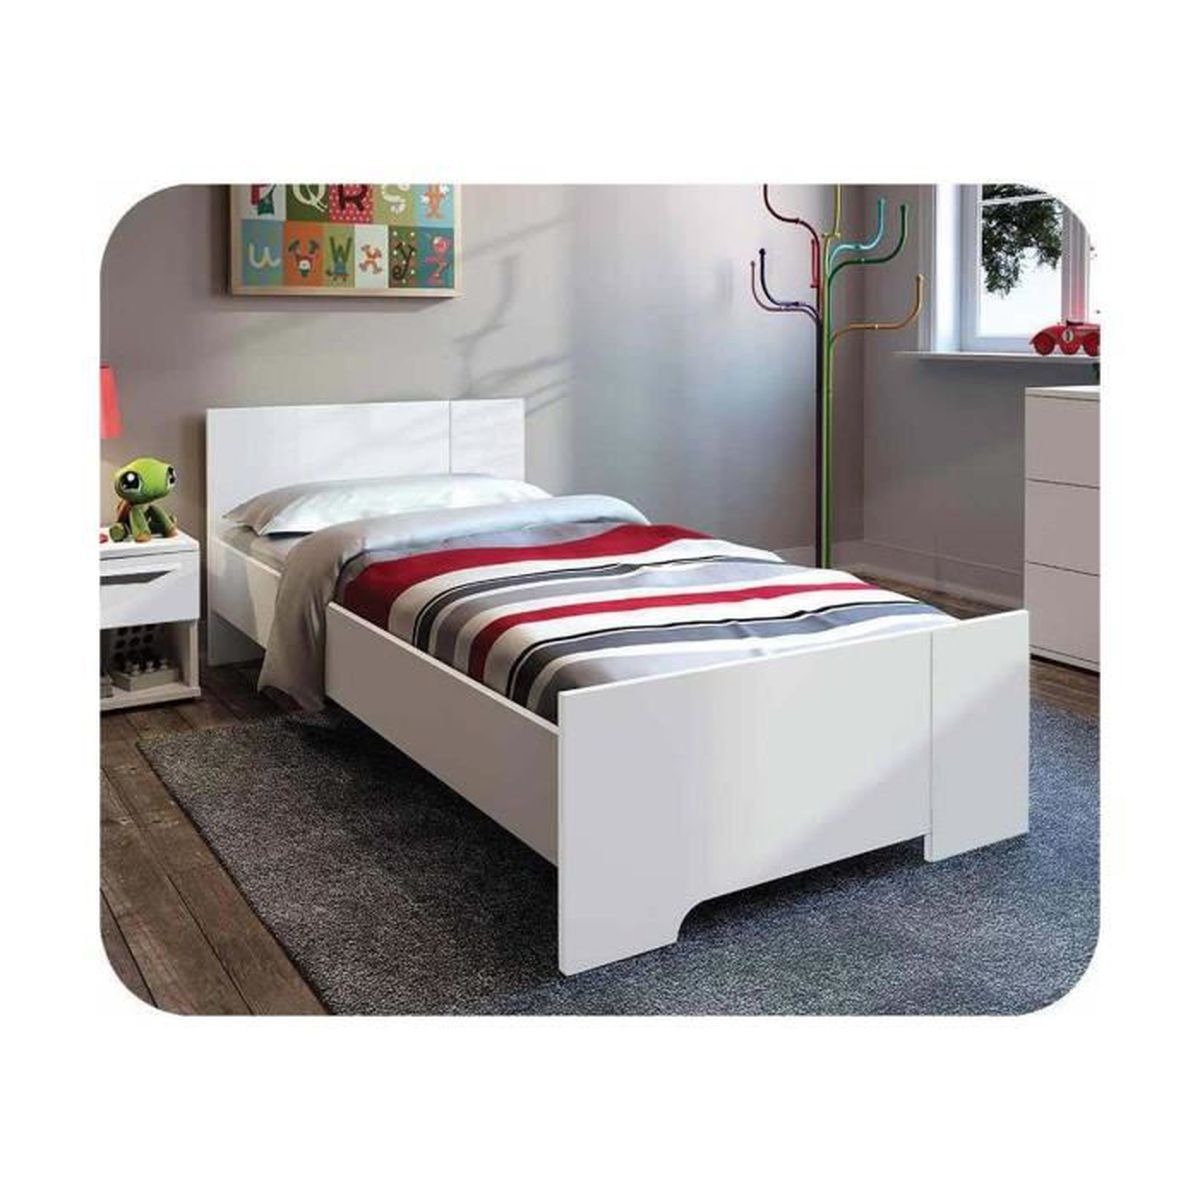 lit enfant jazz 90x190 cm achat vente lit complet lit enfant jazz 90x190 cm cdiscount. Black Bedroom Furniture Sets. Home Design Ideas